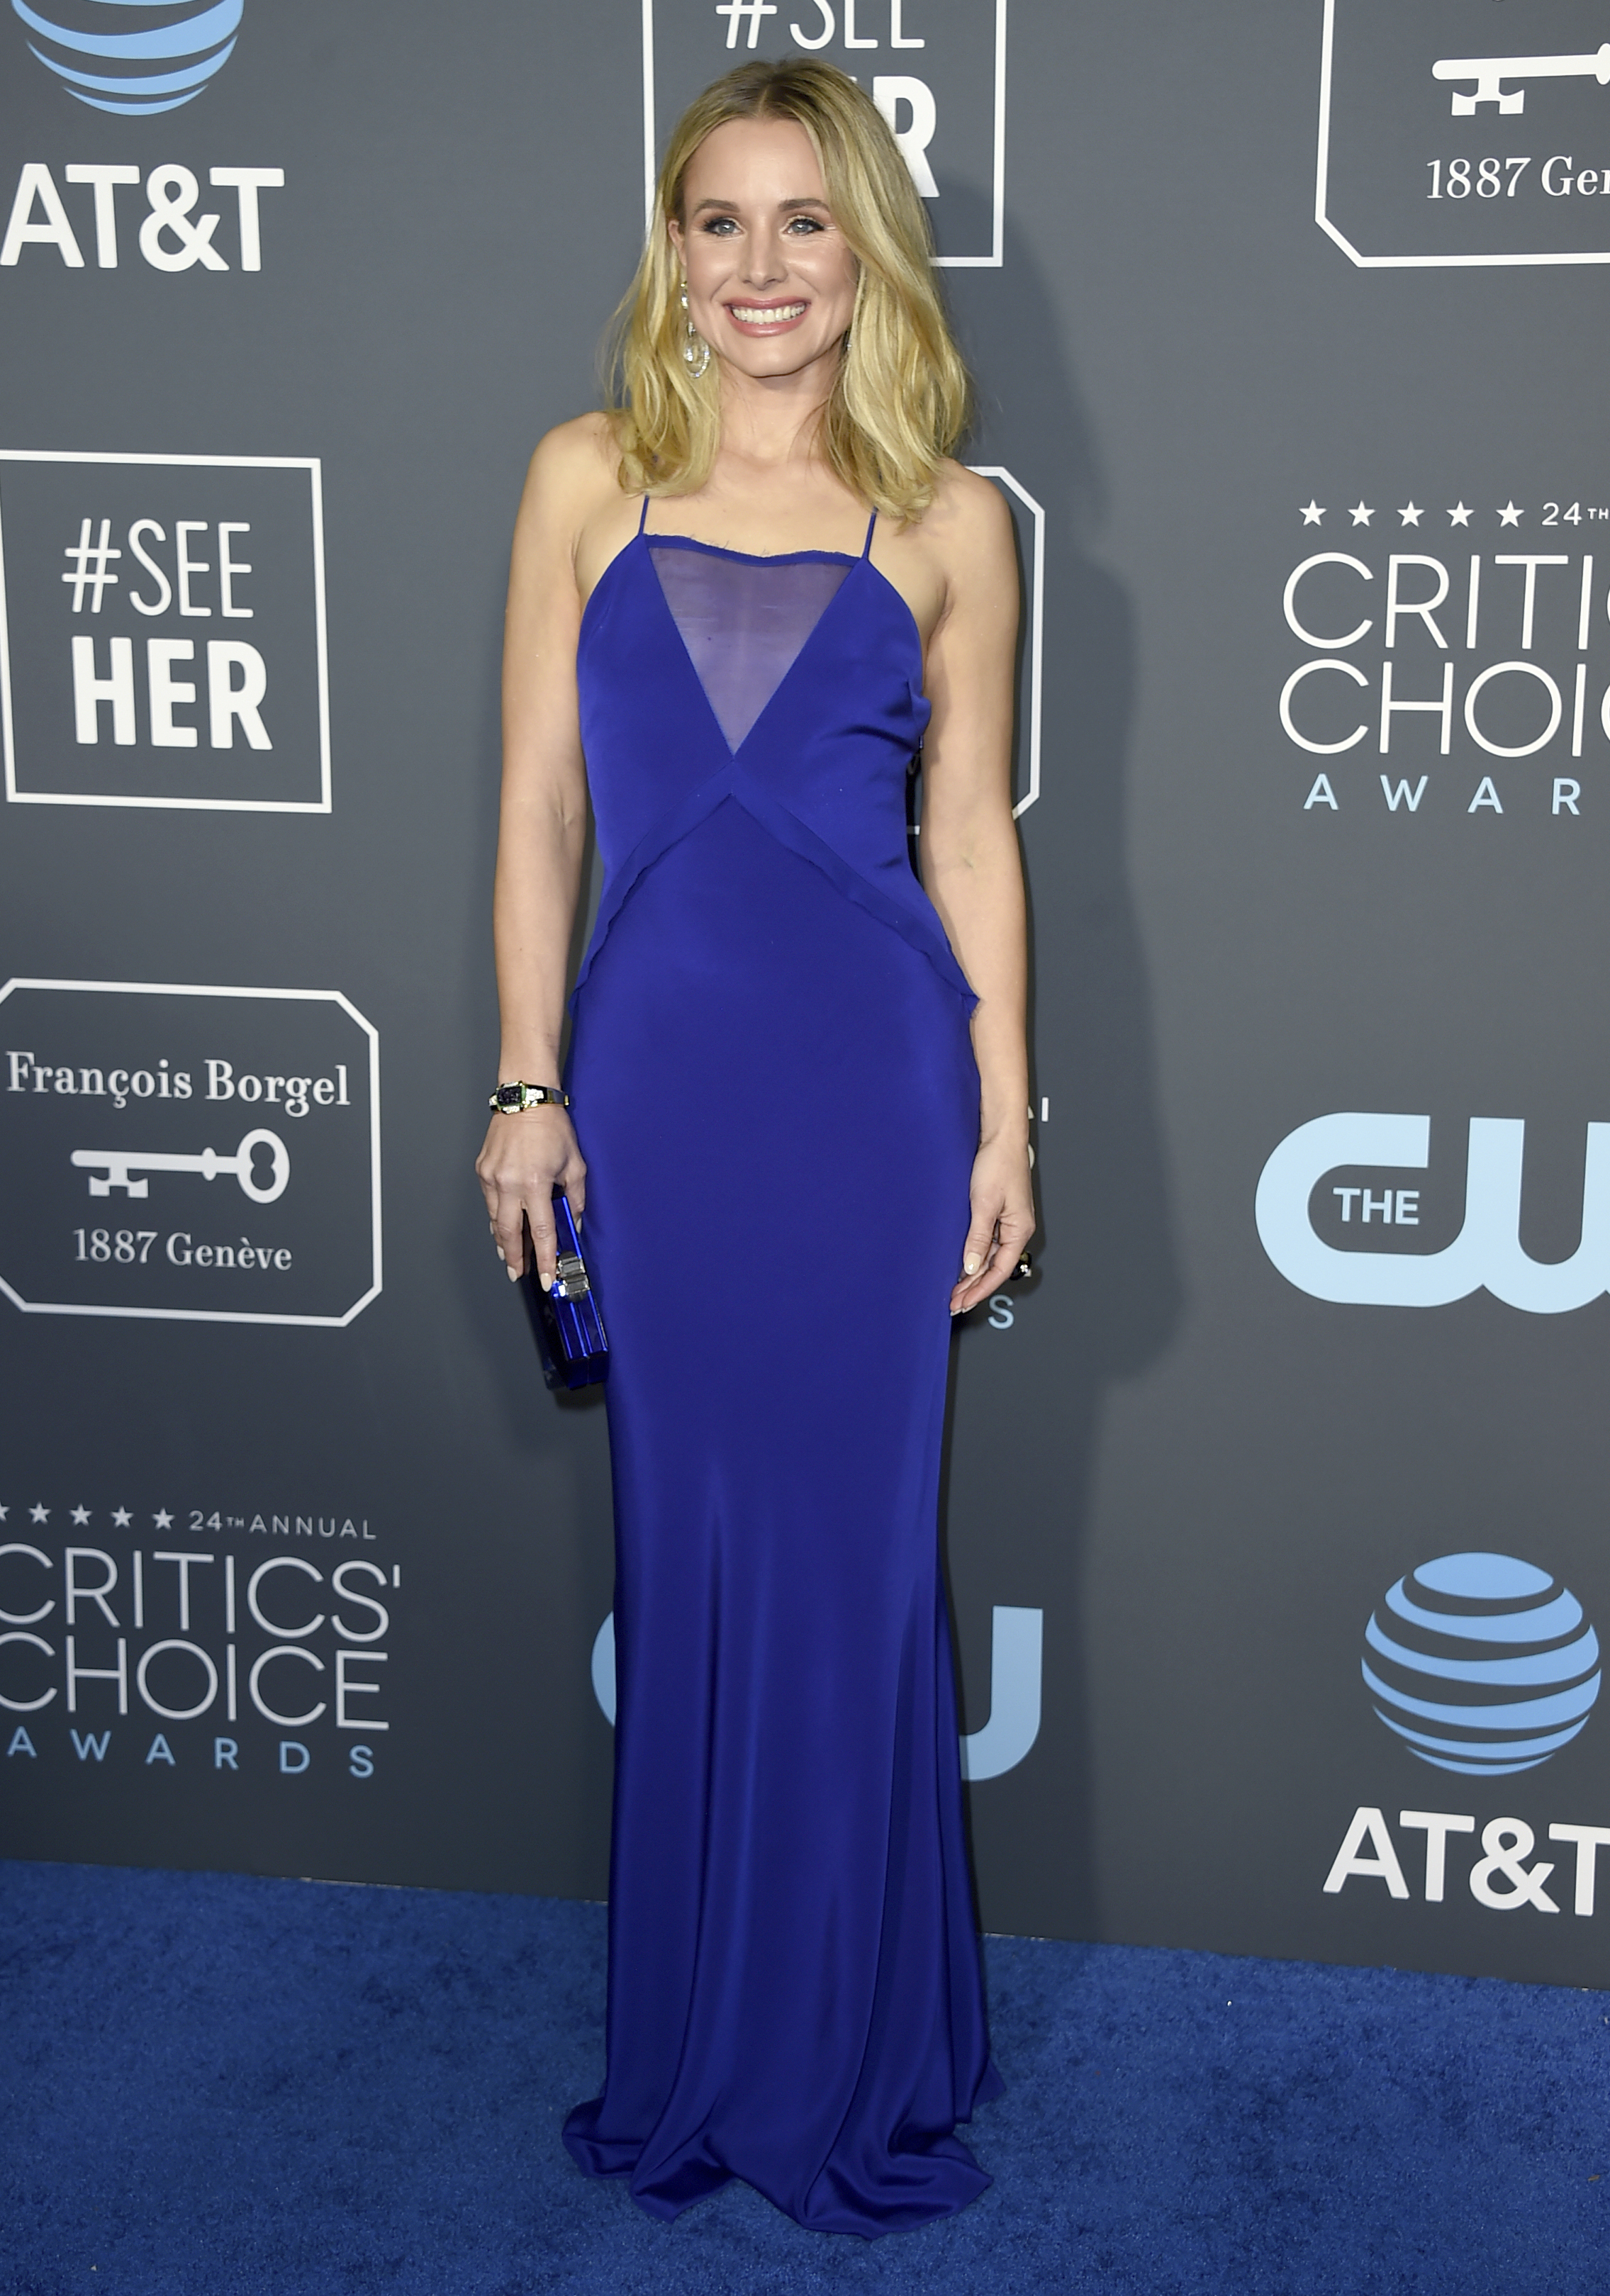 Kristen Bell arrives at the 24th annual Critics' Choice Awards